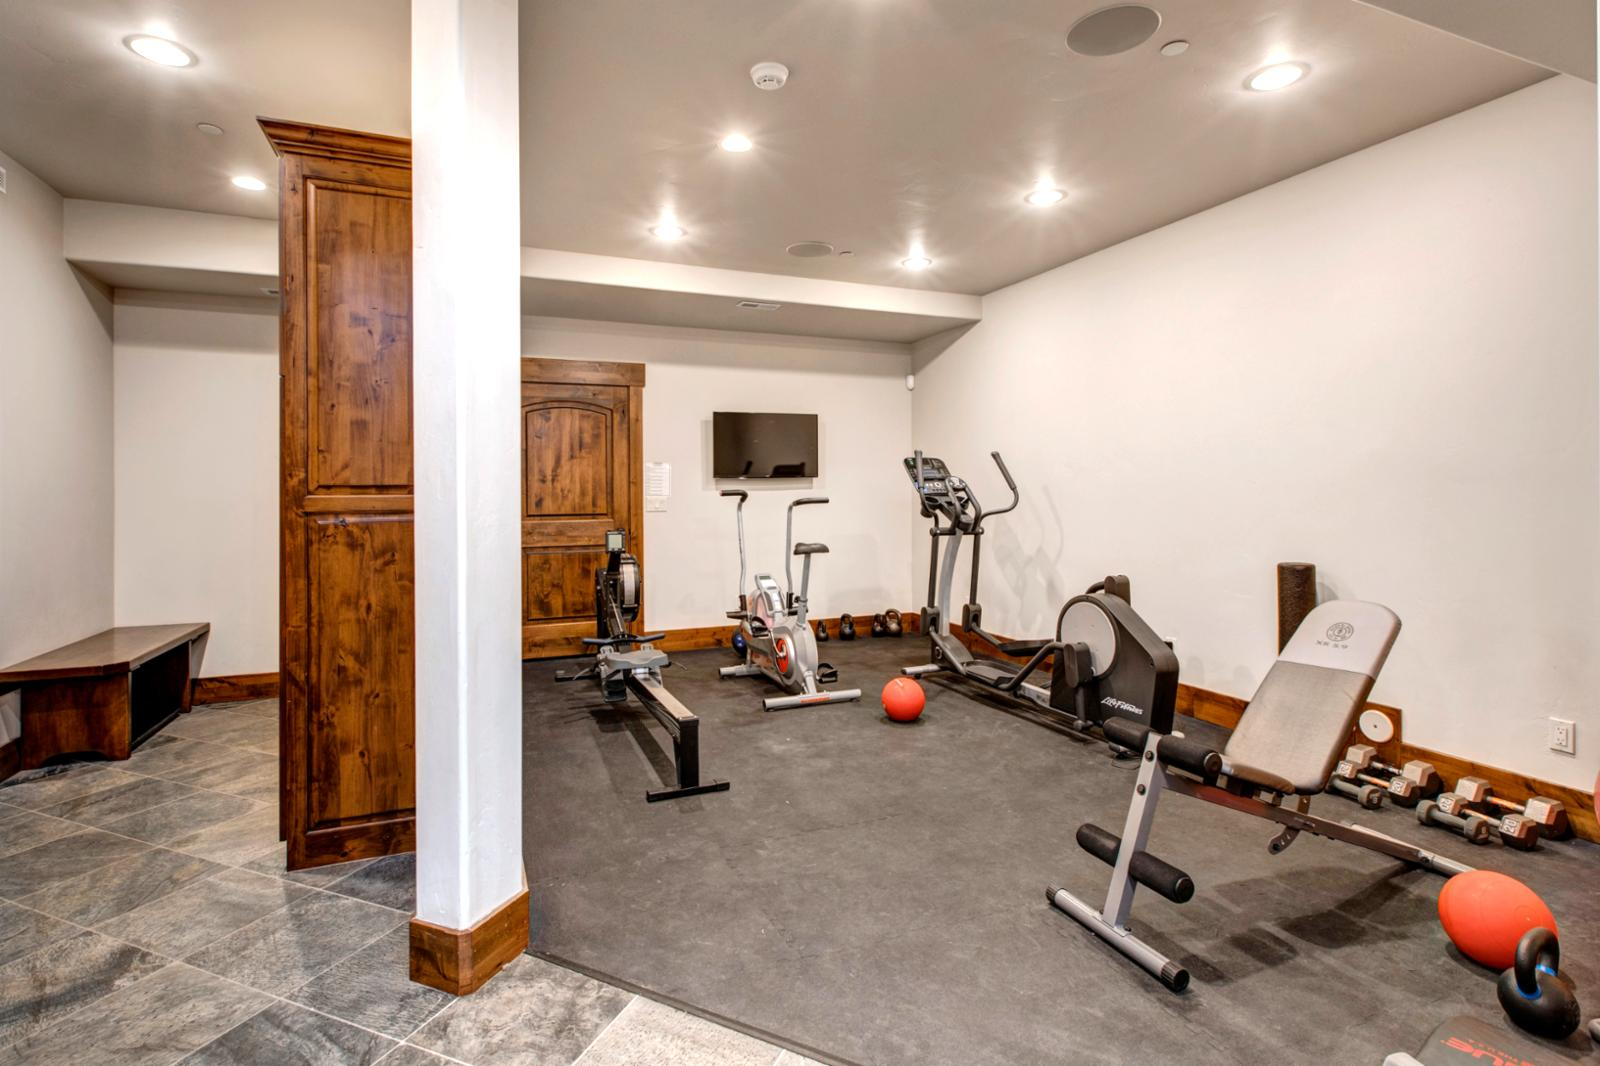 Your own personal work out room will help to get ready for the mountains